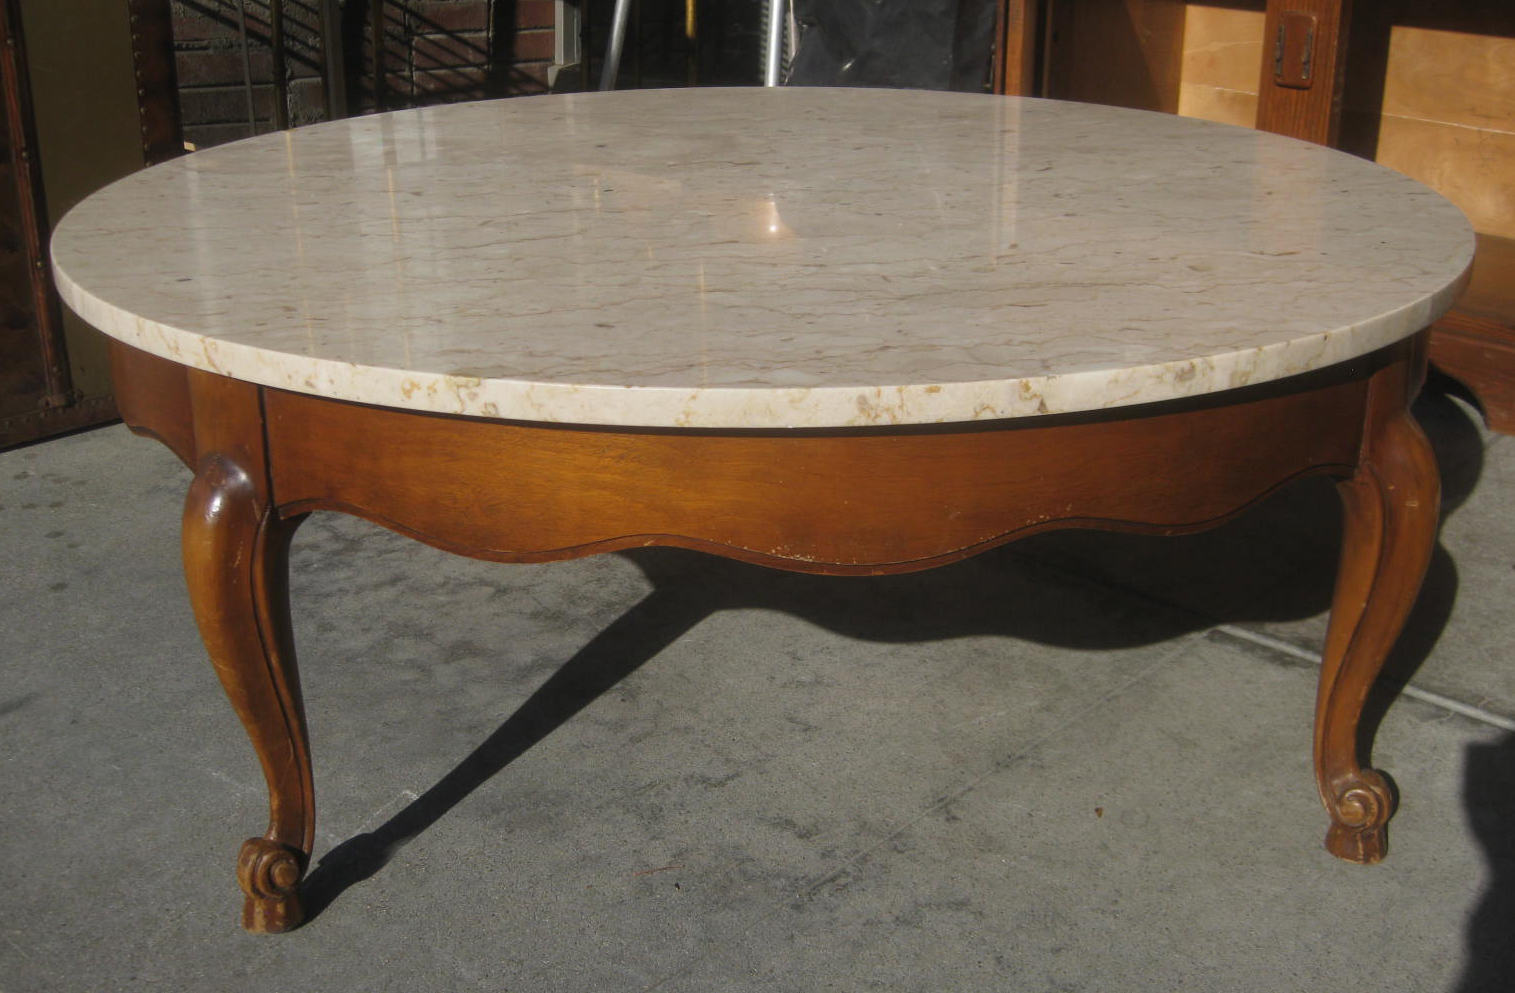 Italian Marble Coffee Table Antique Rascalartsnyc